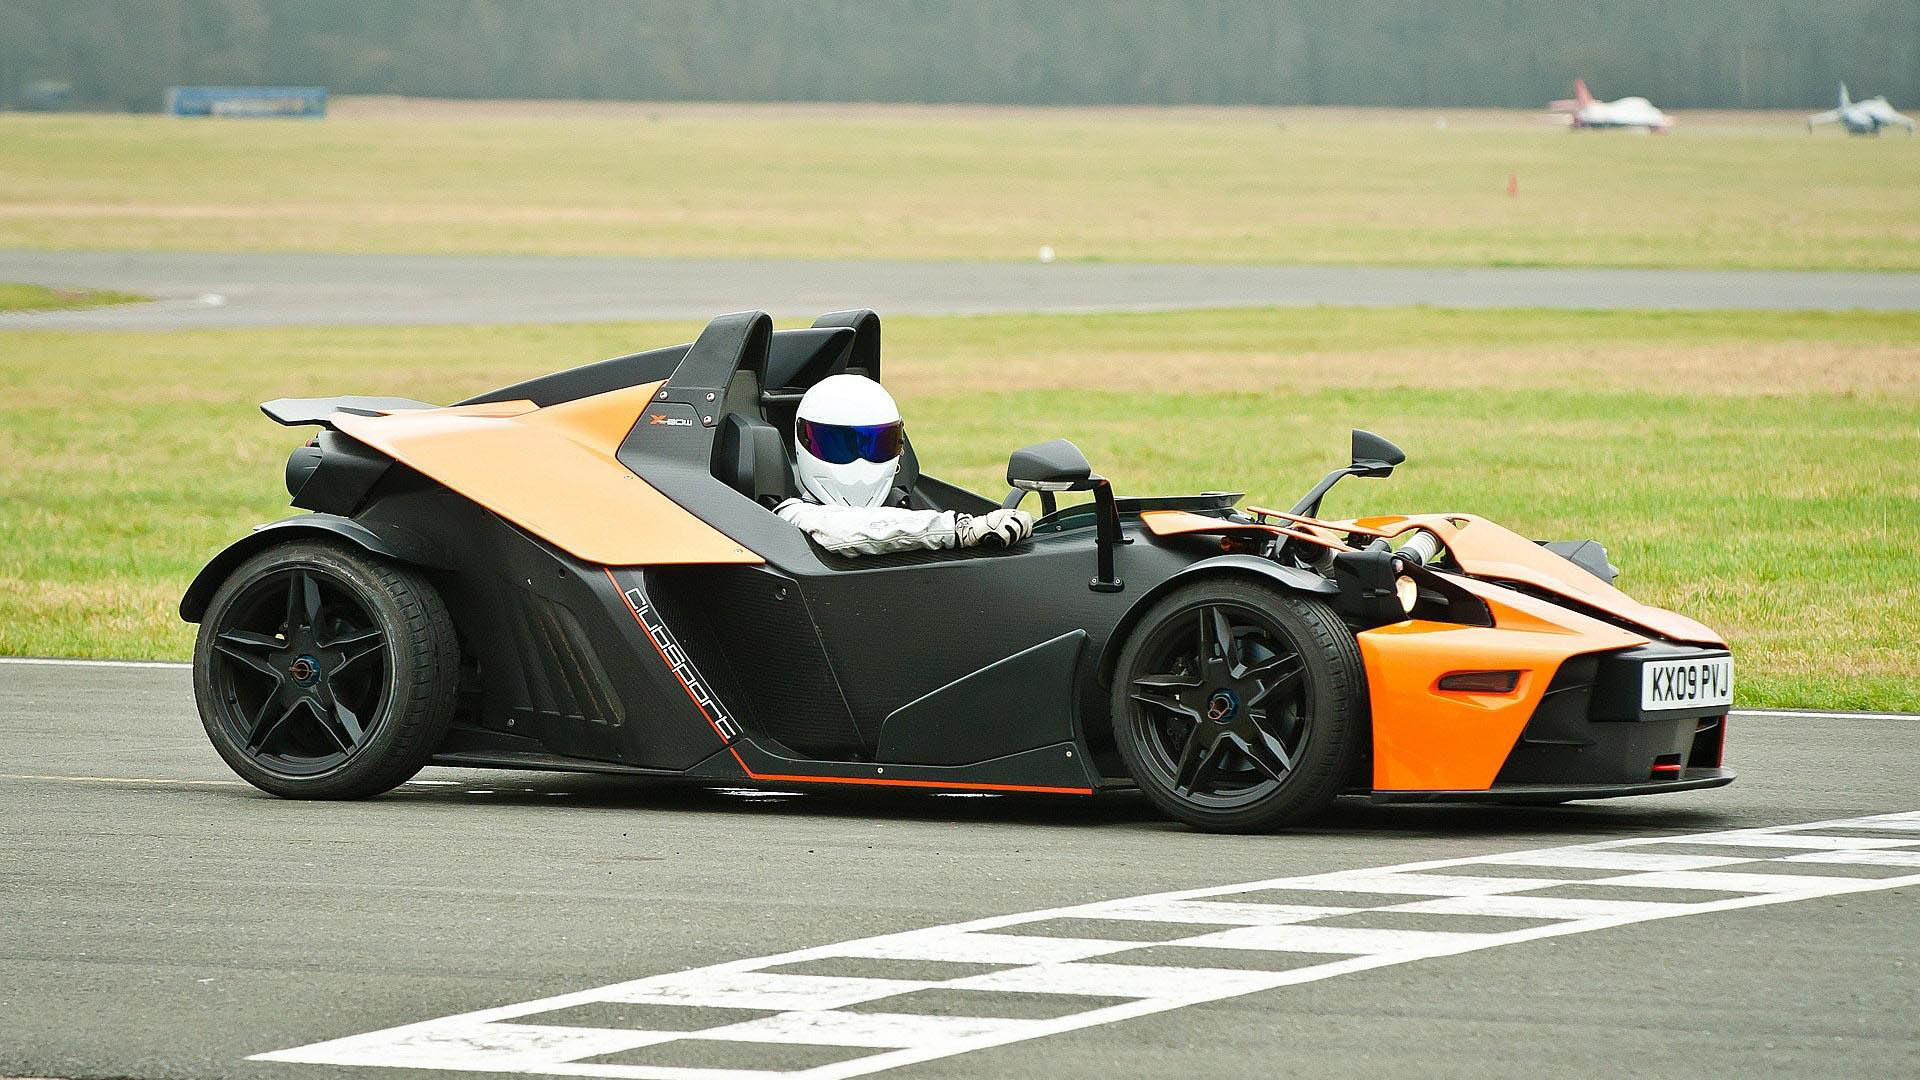 1920x1080 The Stig in a KTM X-Bow  wallpaper